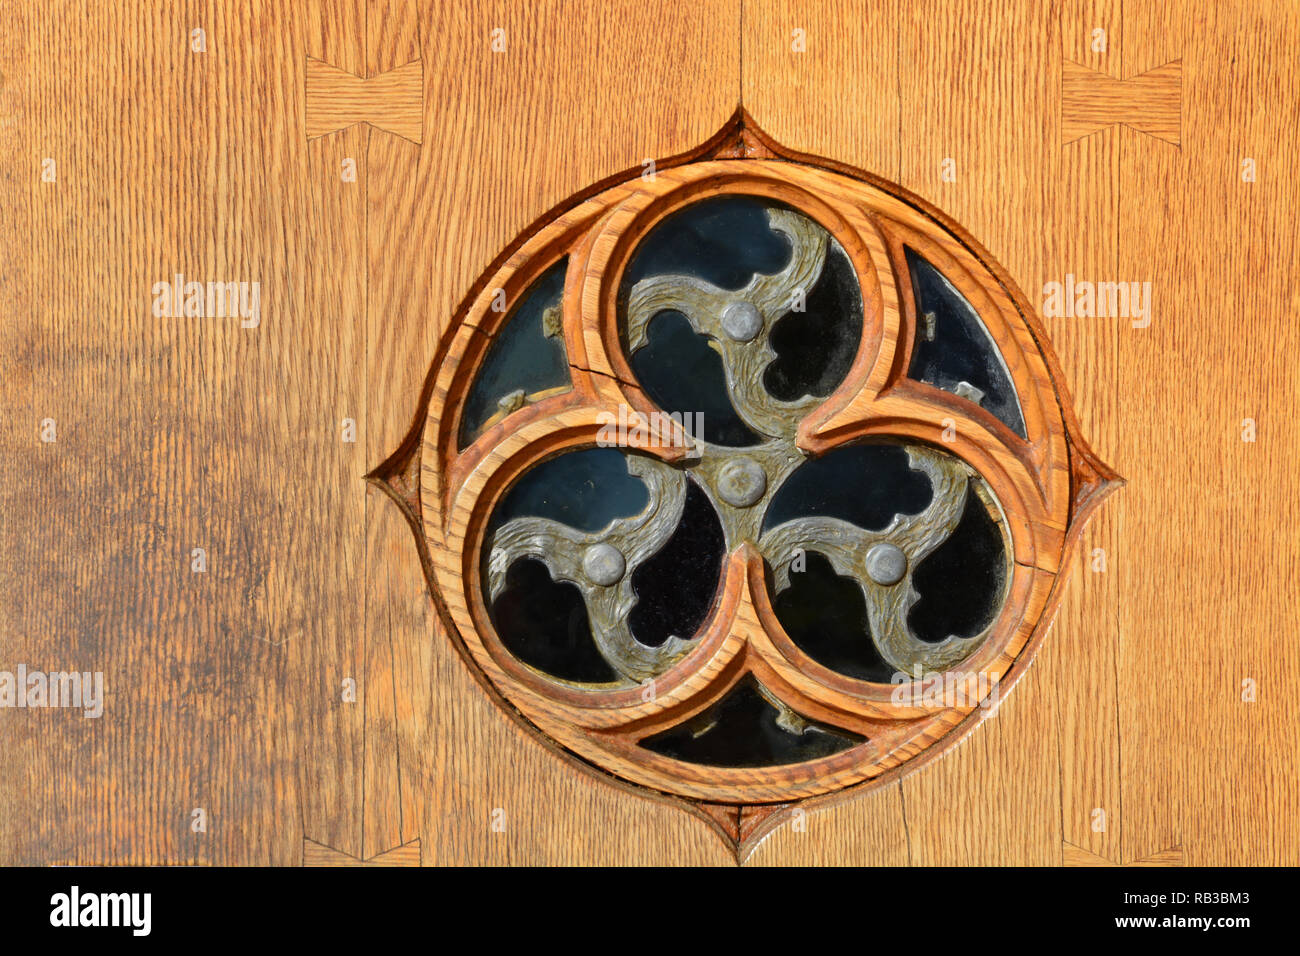 A round window in the door to the Duke University Chapel in Durham North Carolina. Stock Photo